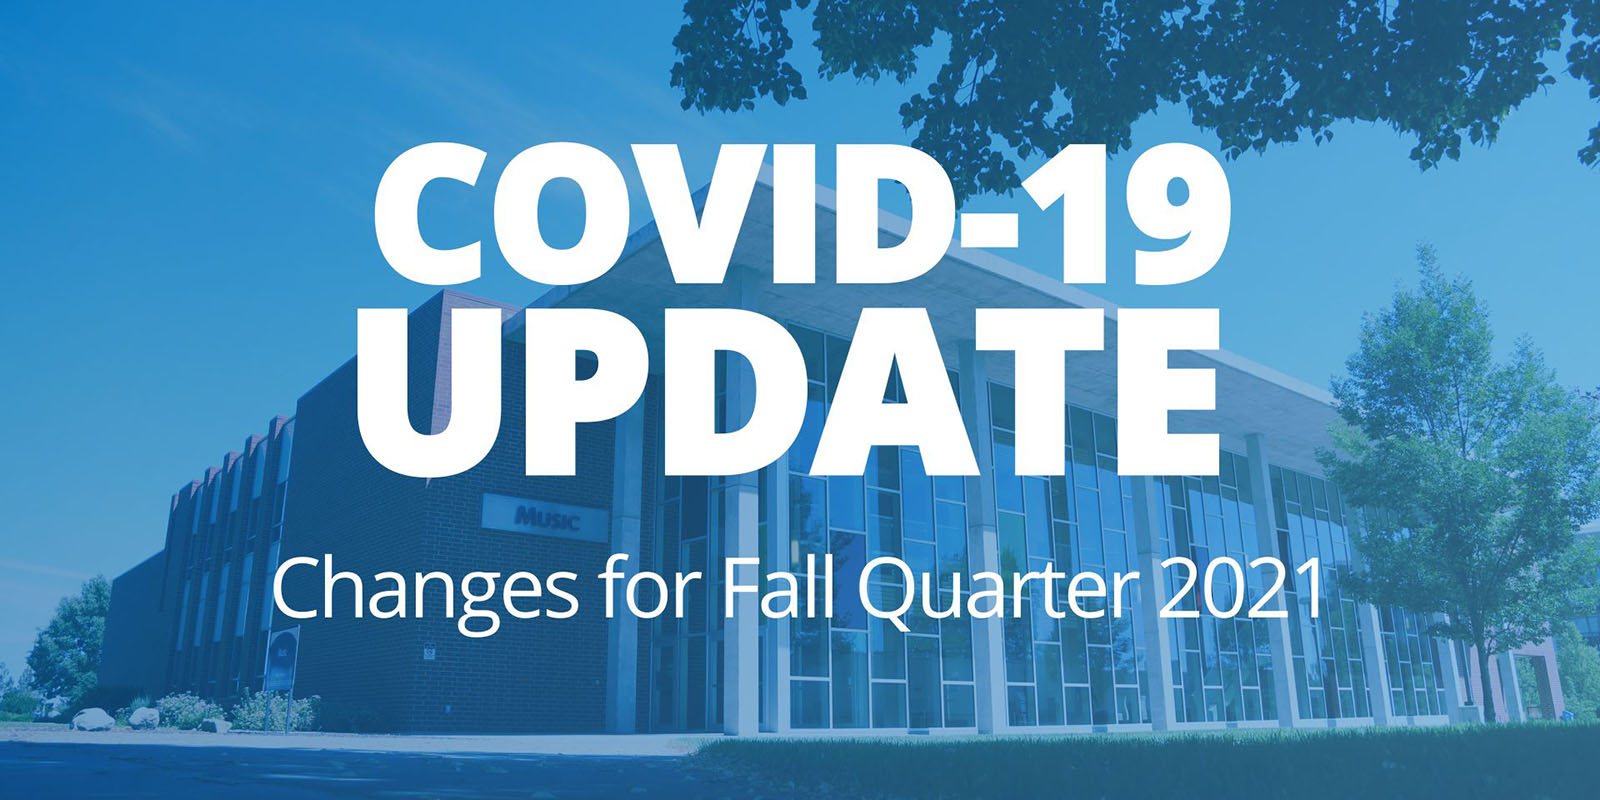 COVID 19 Update Changes for Fall Quarter 2021